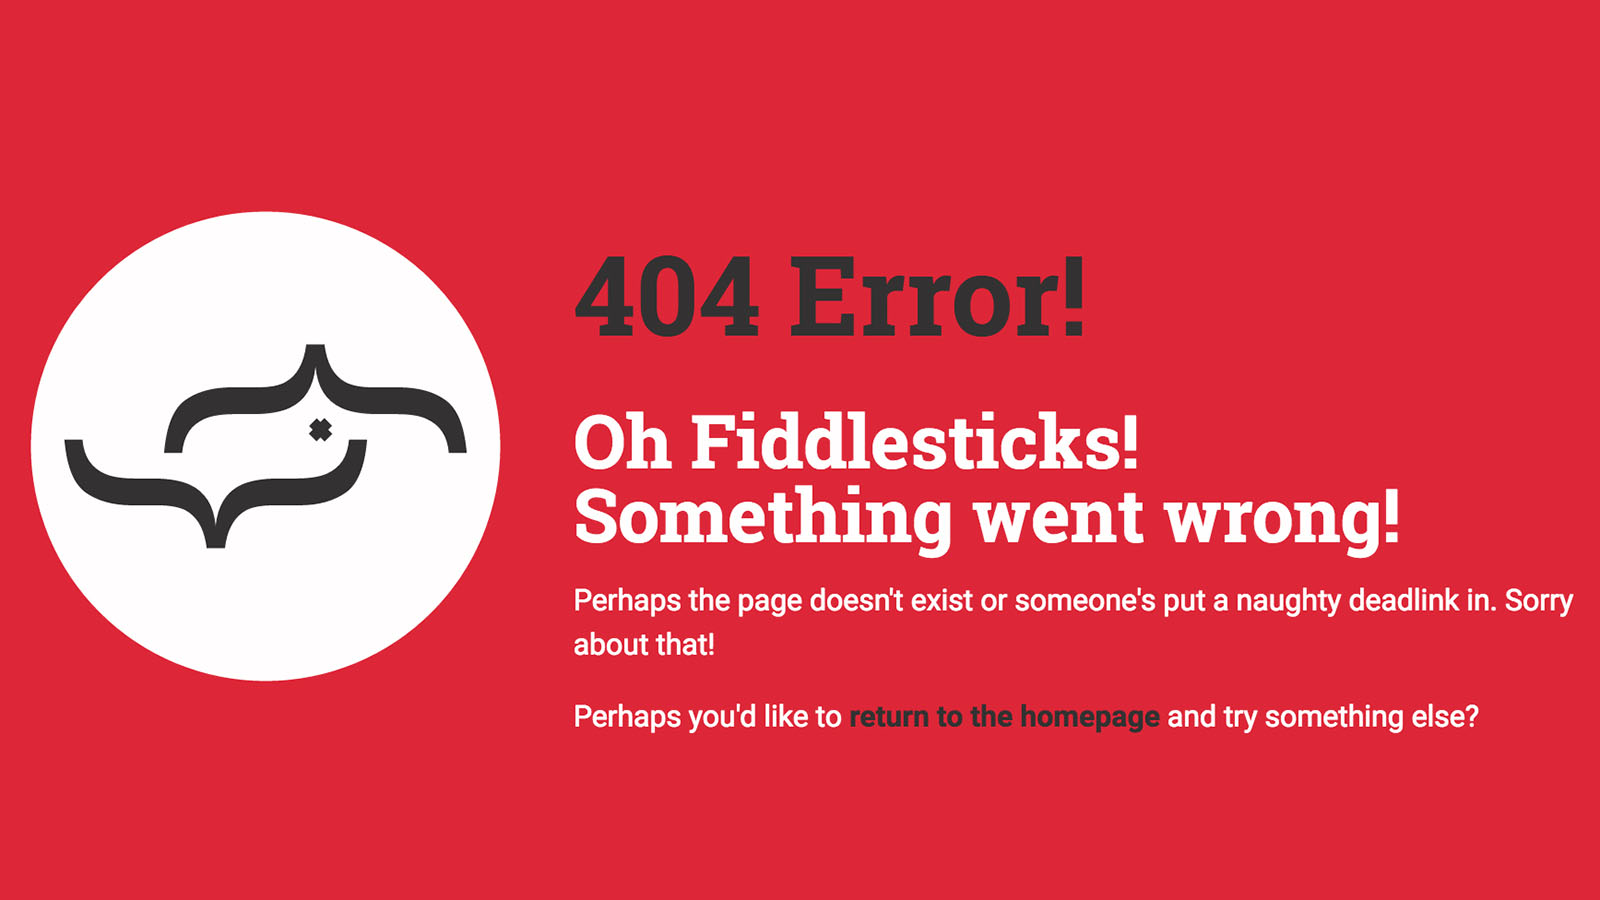 The Real Life Digital 404 page which reads: '404 Error! Oh Fiddlesticks! Something went wrong!'.